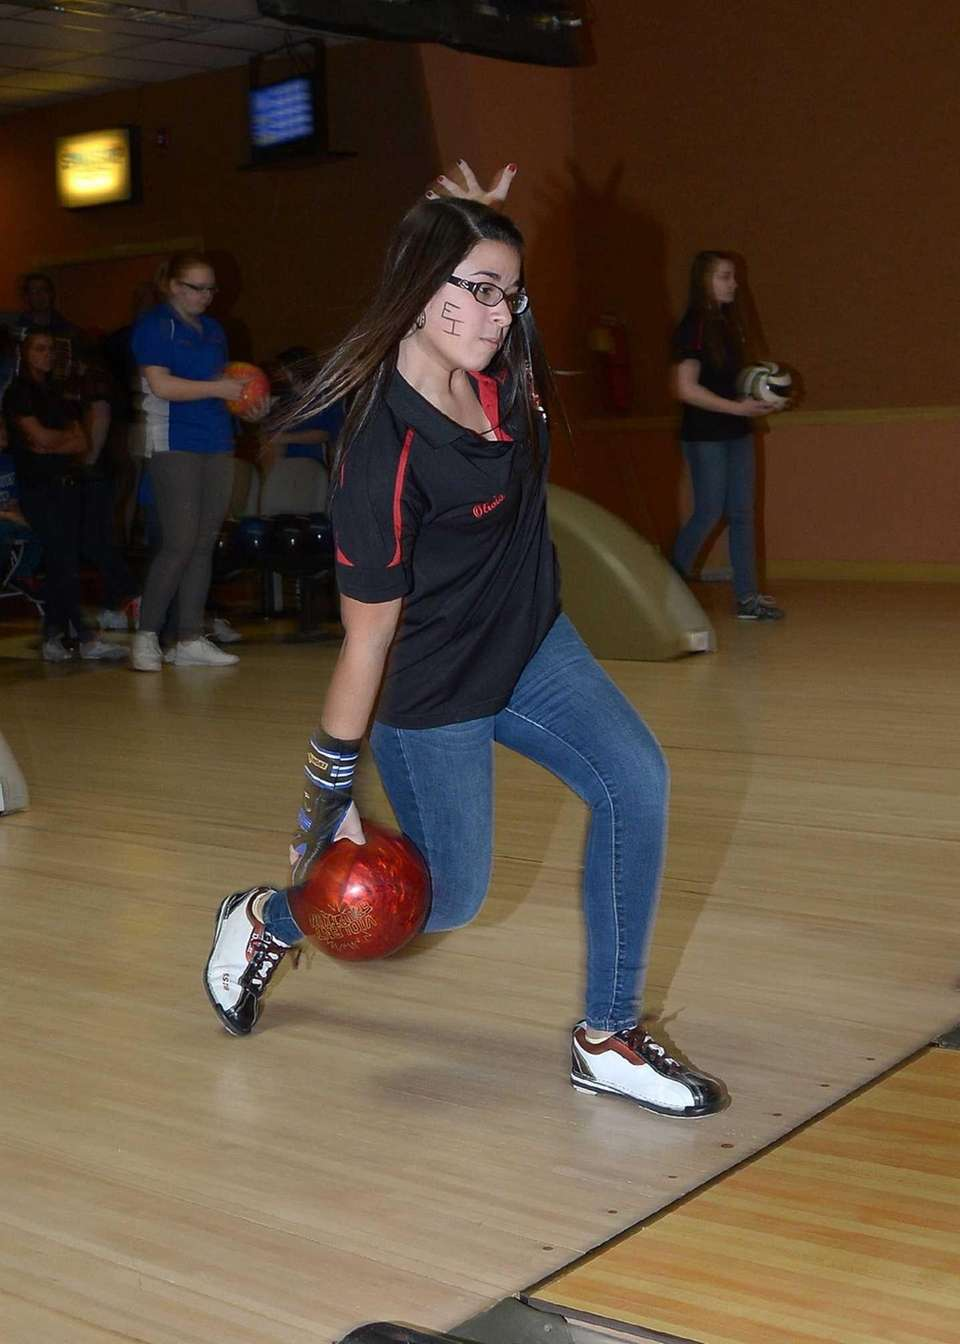 East Islip's Olivia Lopera on the approach, just